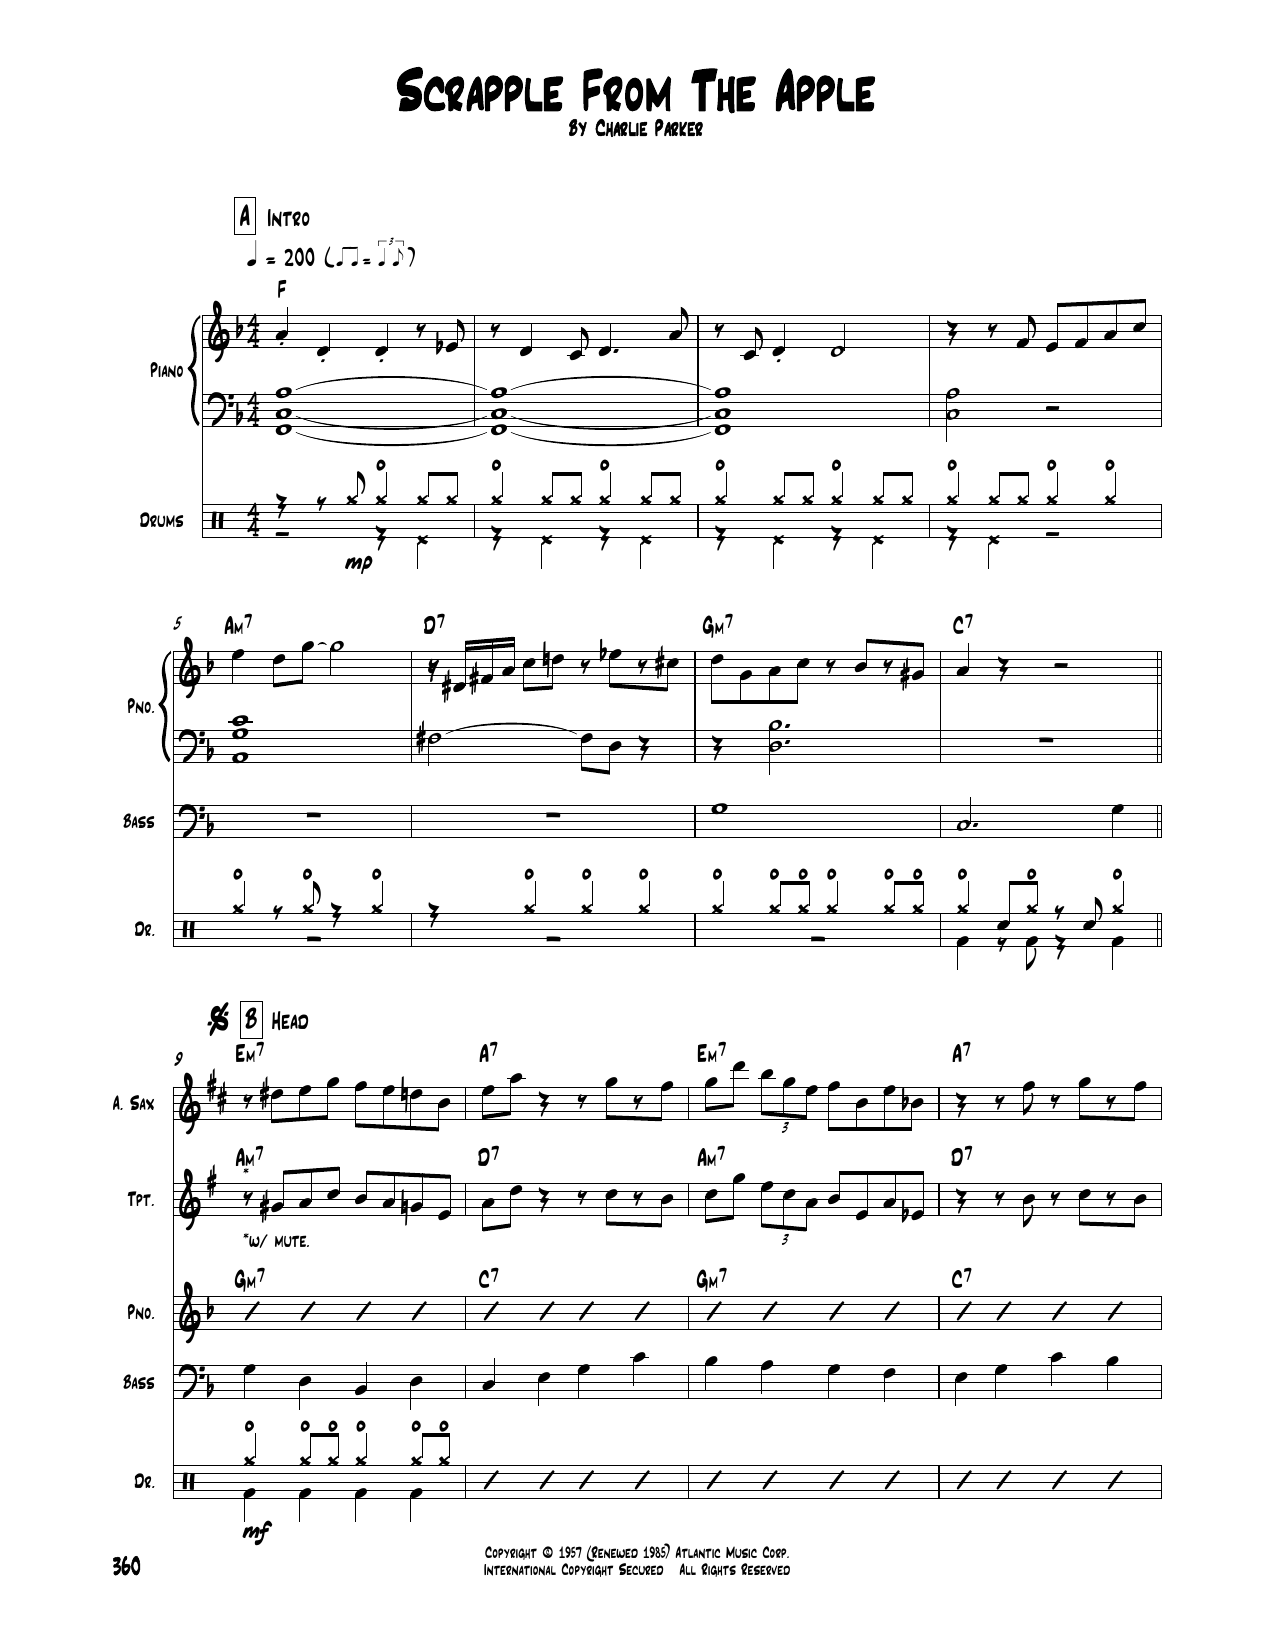 Charlie Parker Scrapple From The Apple Sheet Music Download Pdf Score 97222